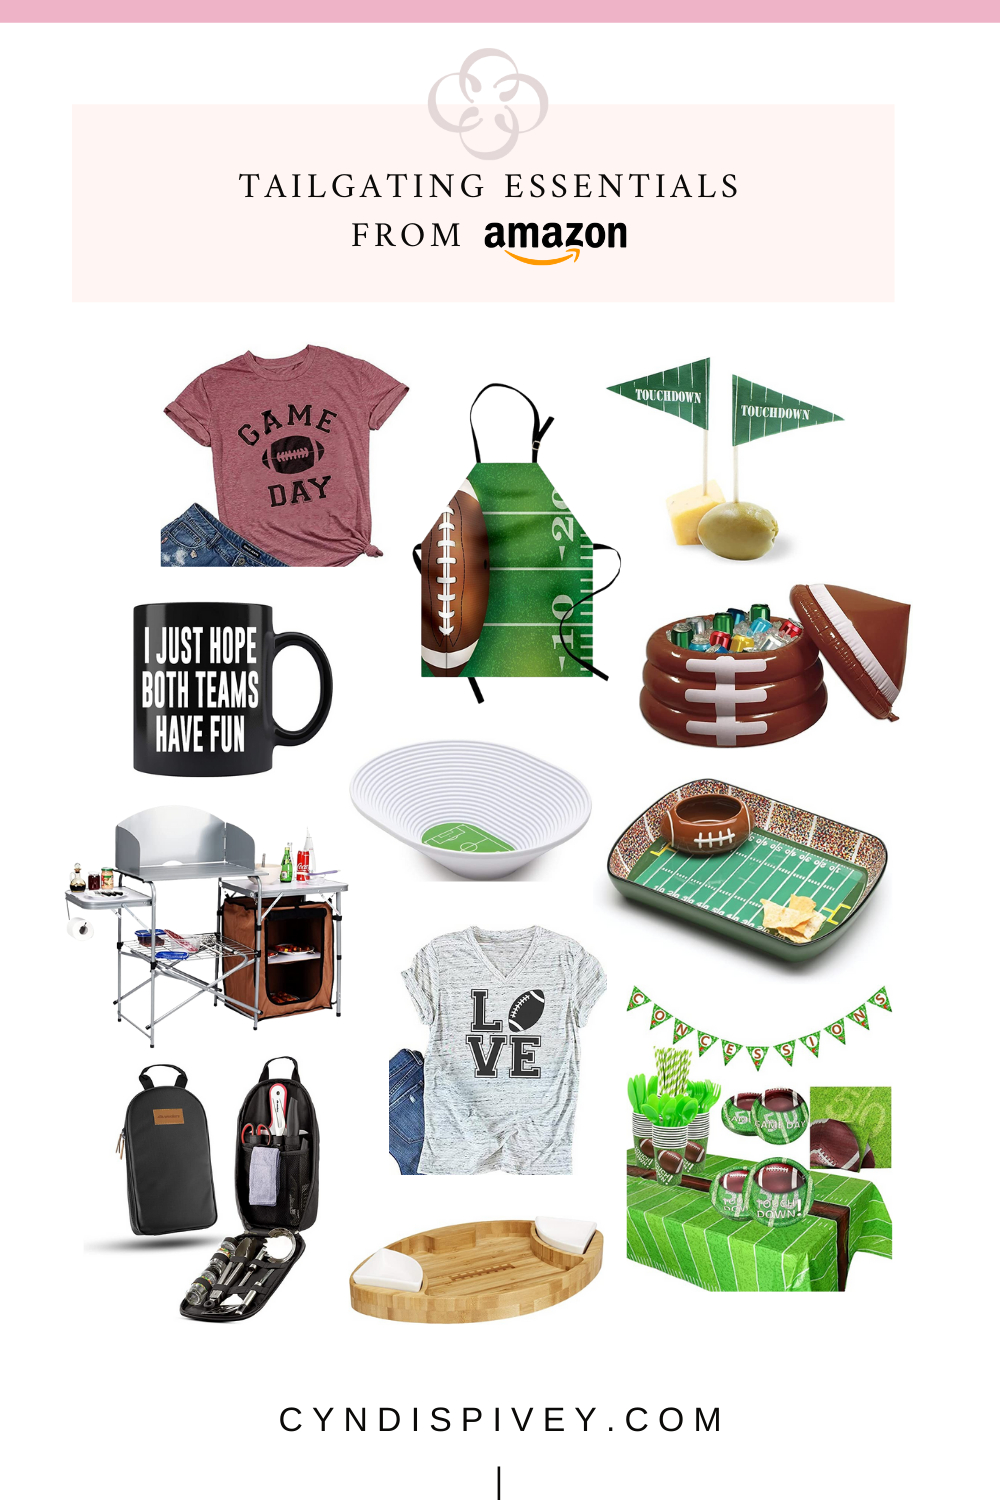 Tailgating Essentials from Amazon